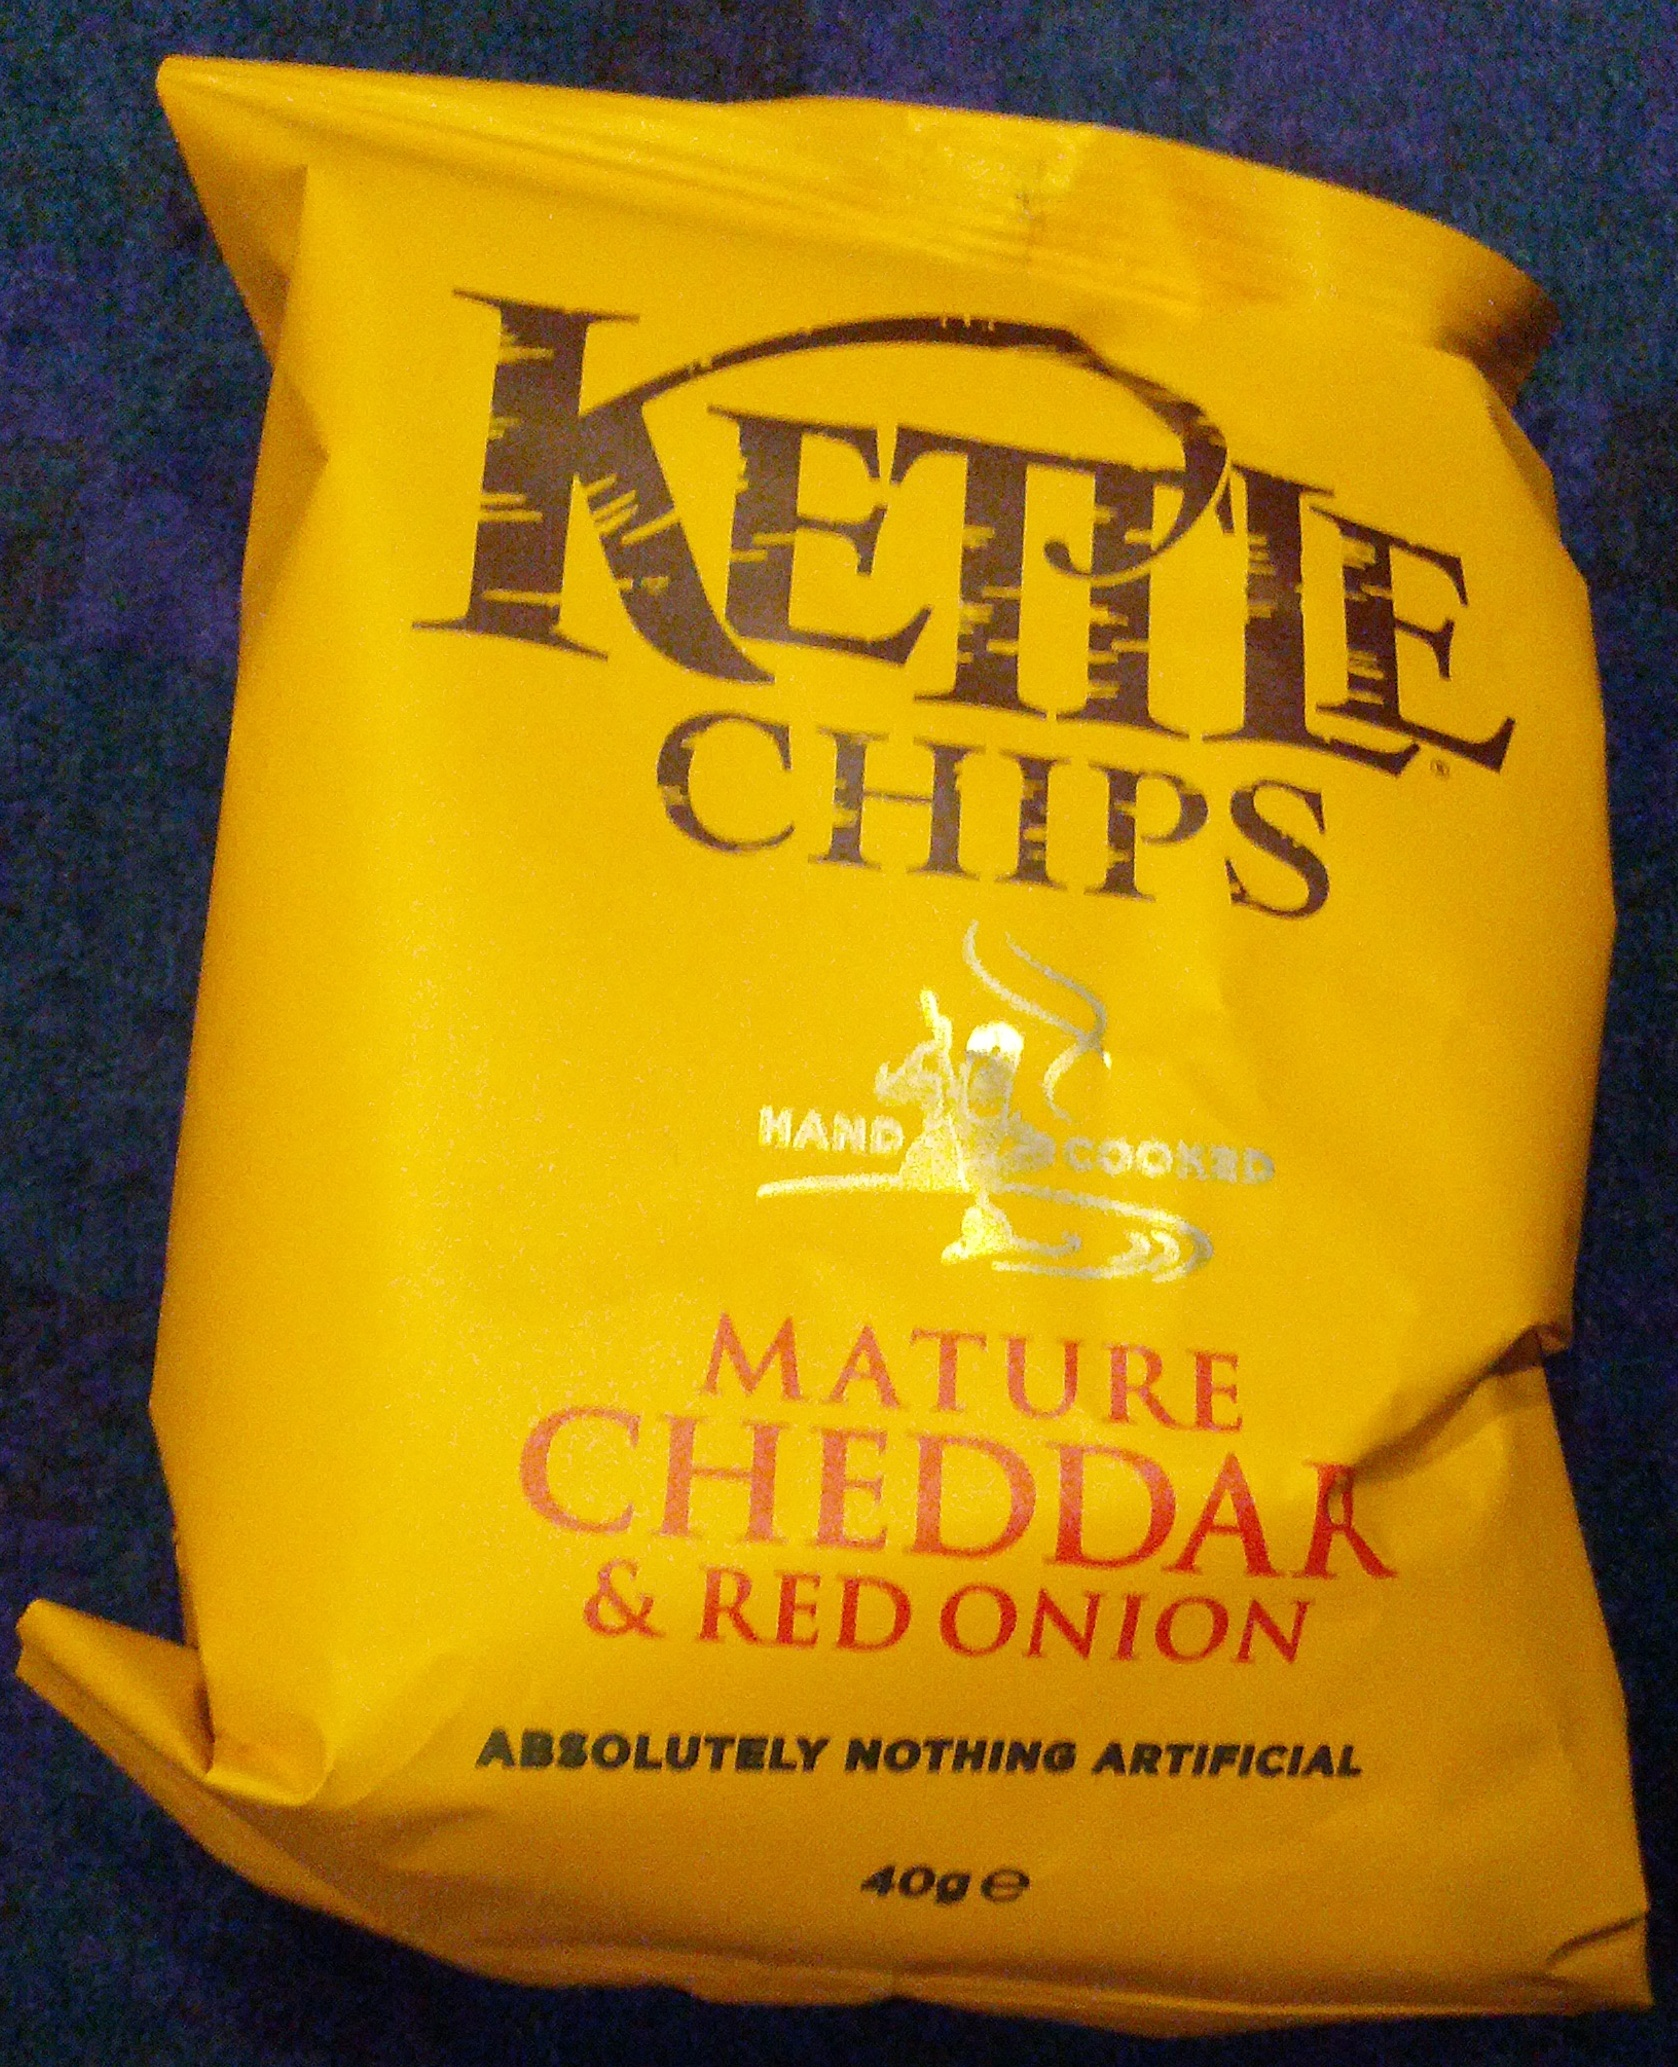 Kettle Chips mature cheddar & red onion - Product - en